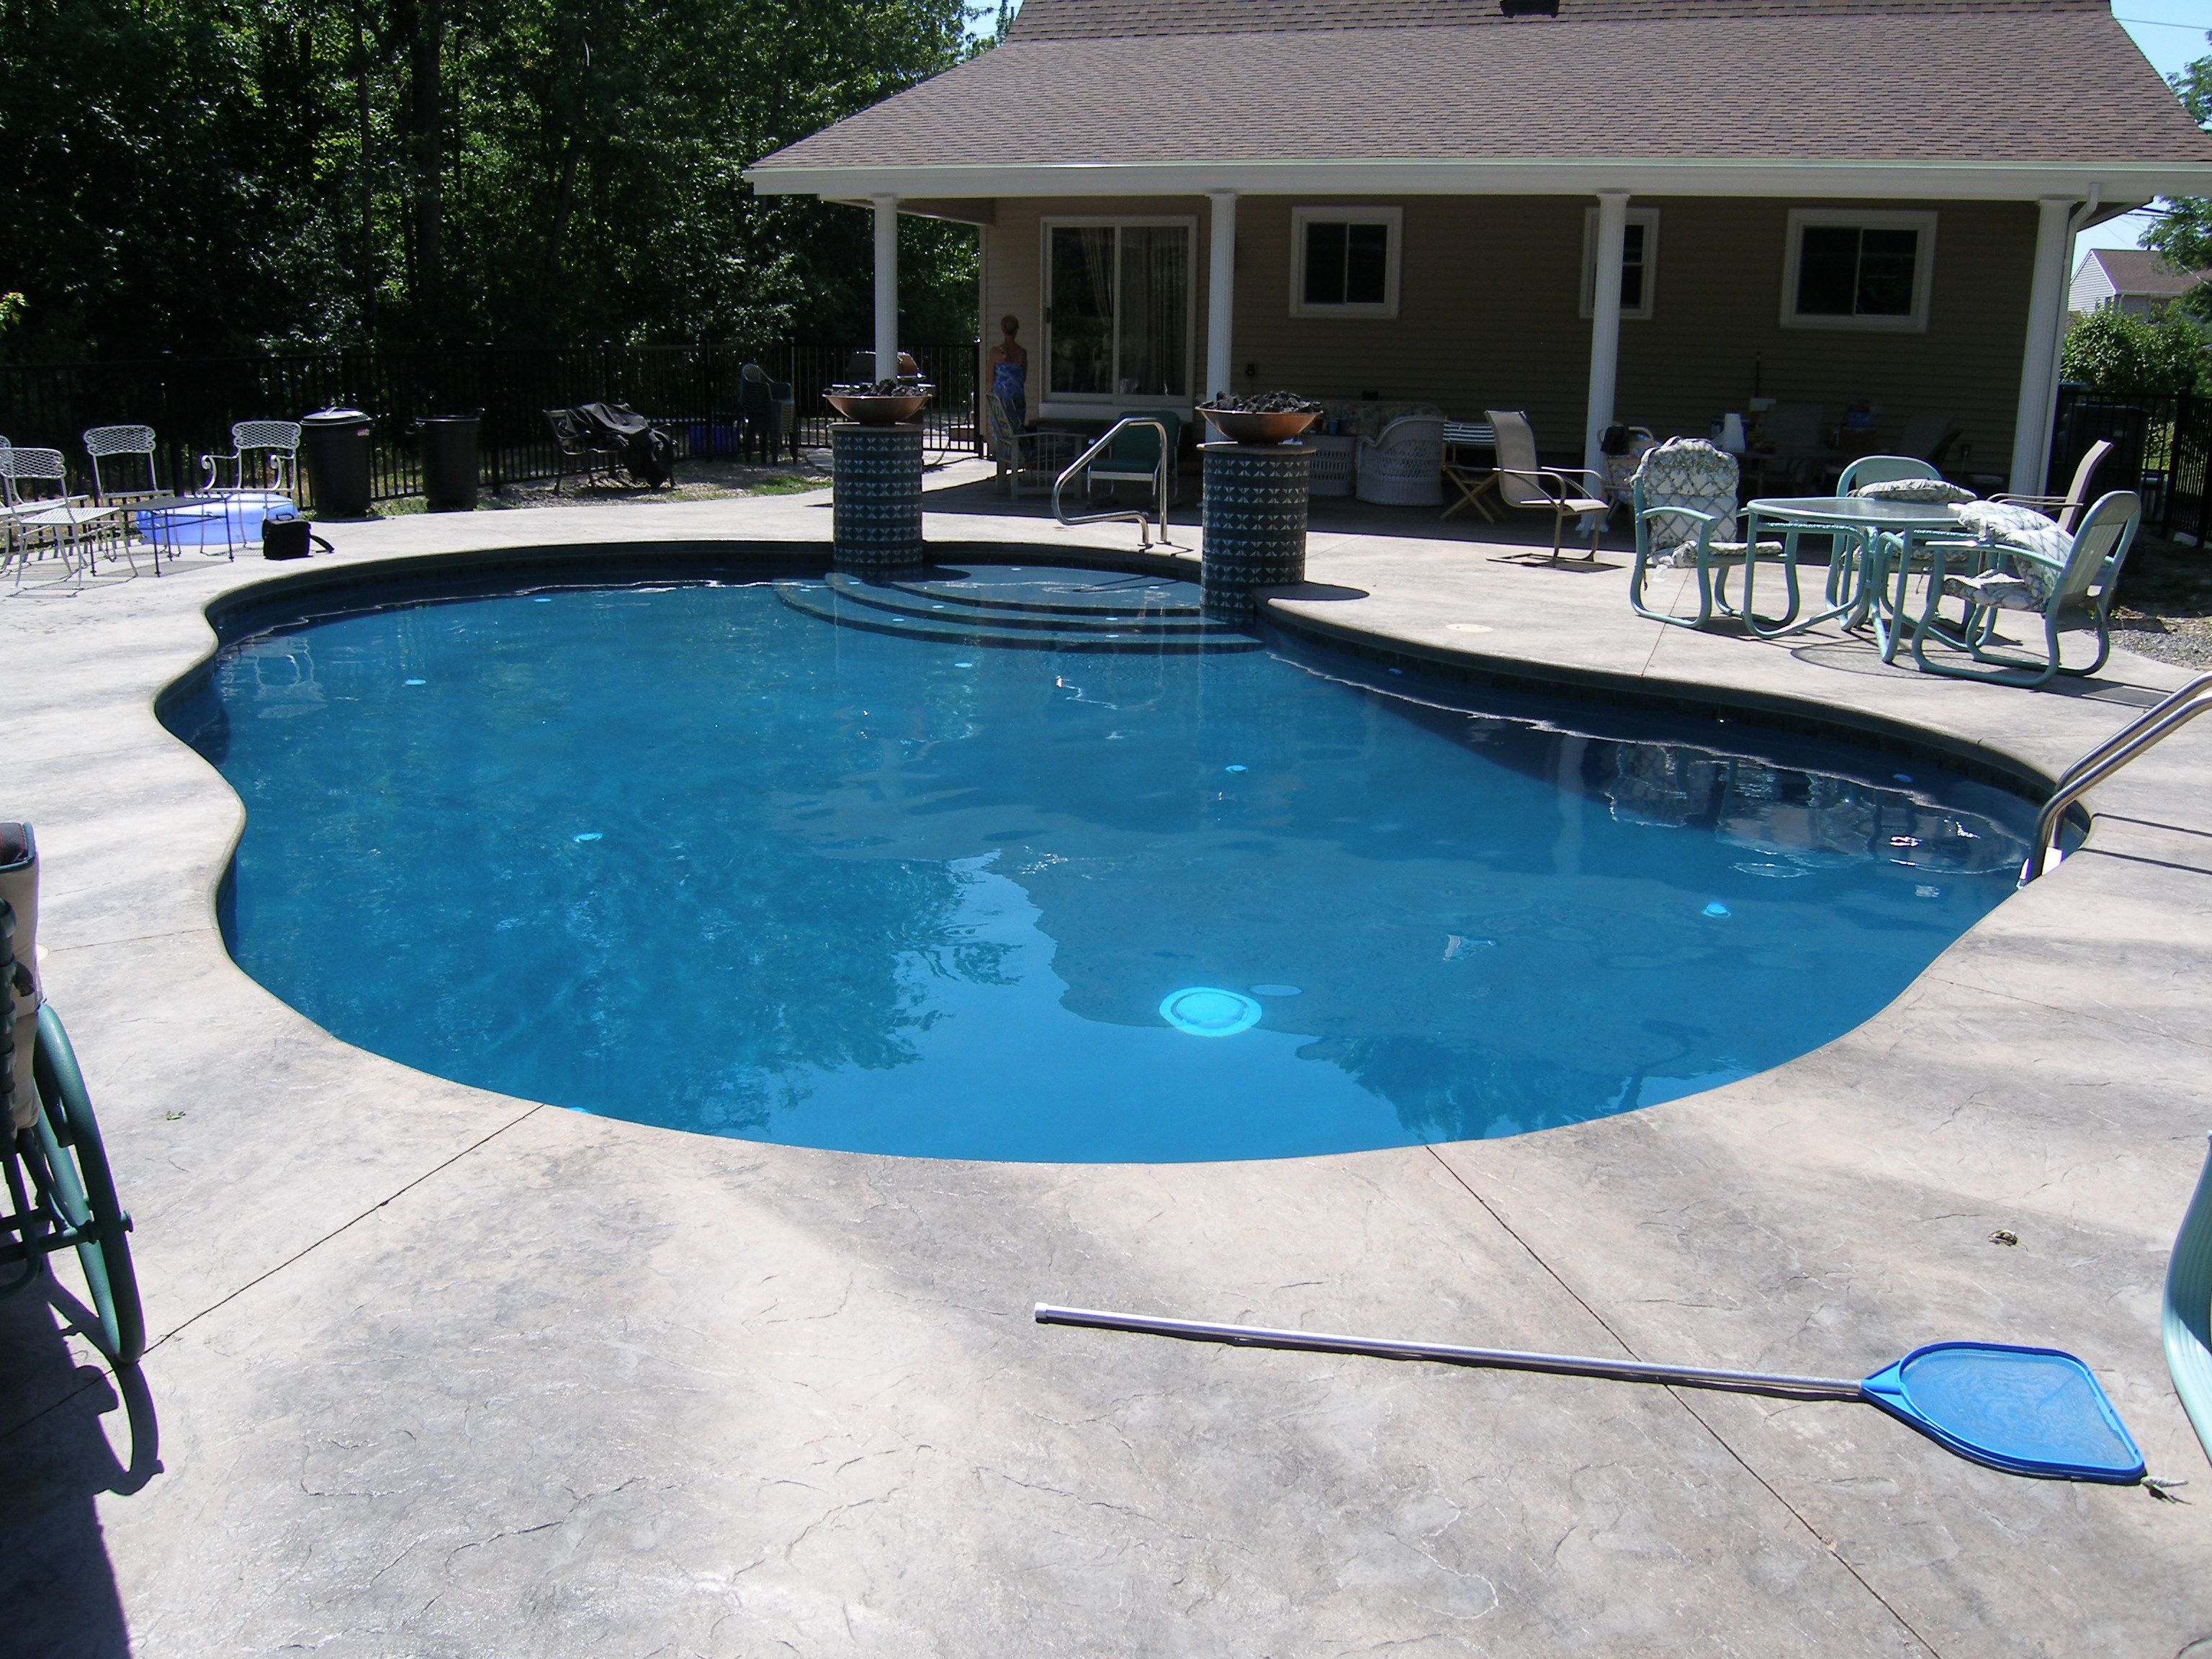 18x34 freeform gunite pool with tanning shelf and two fire bowls